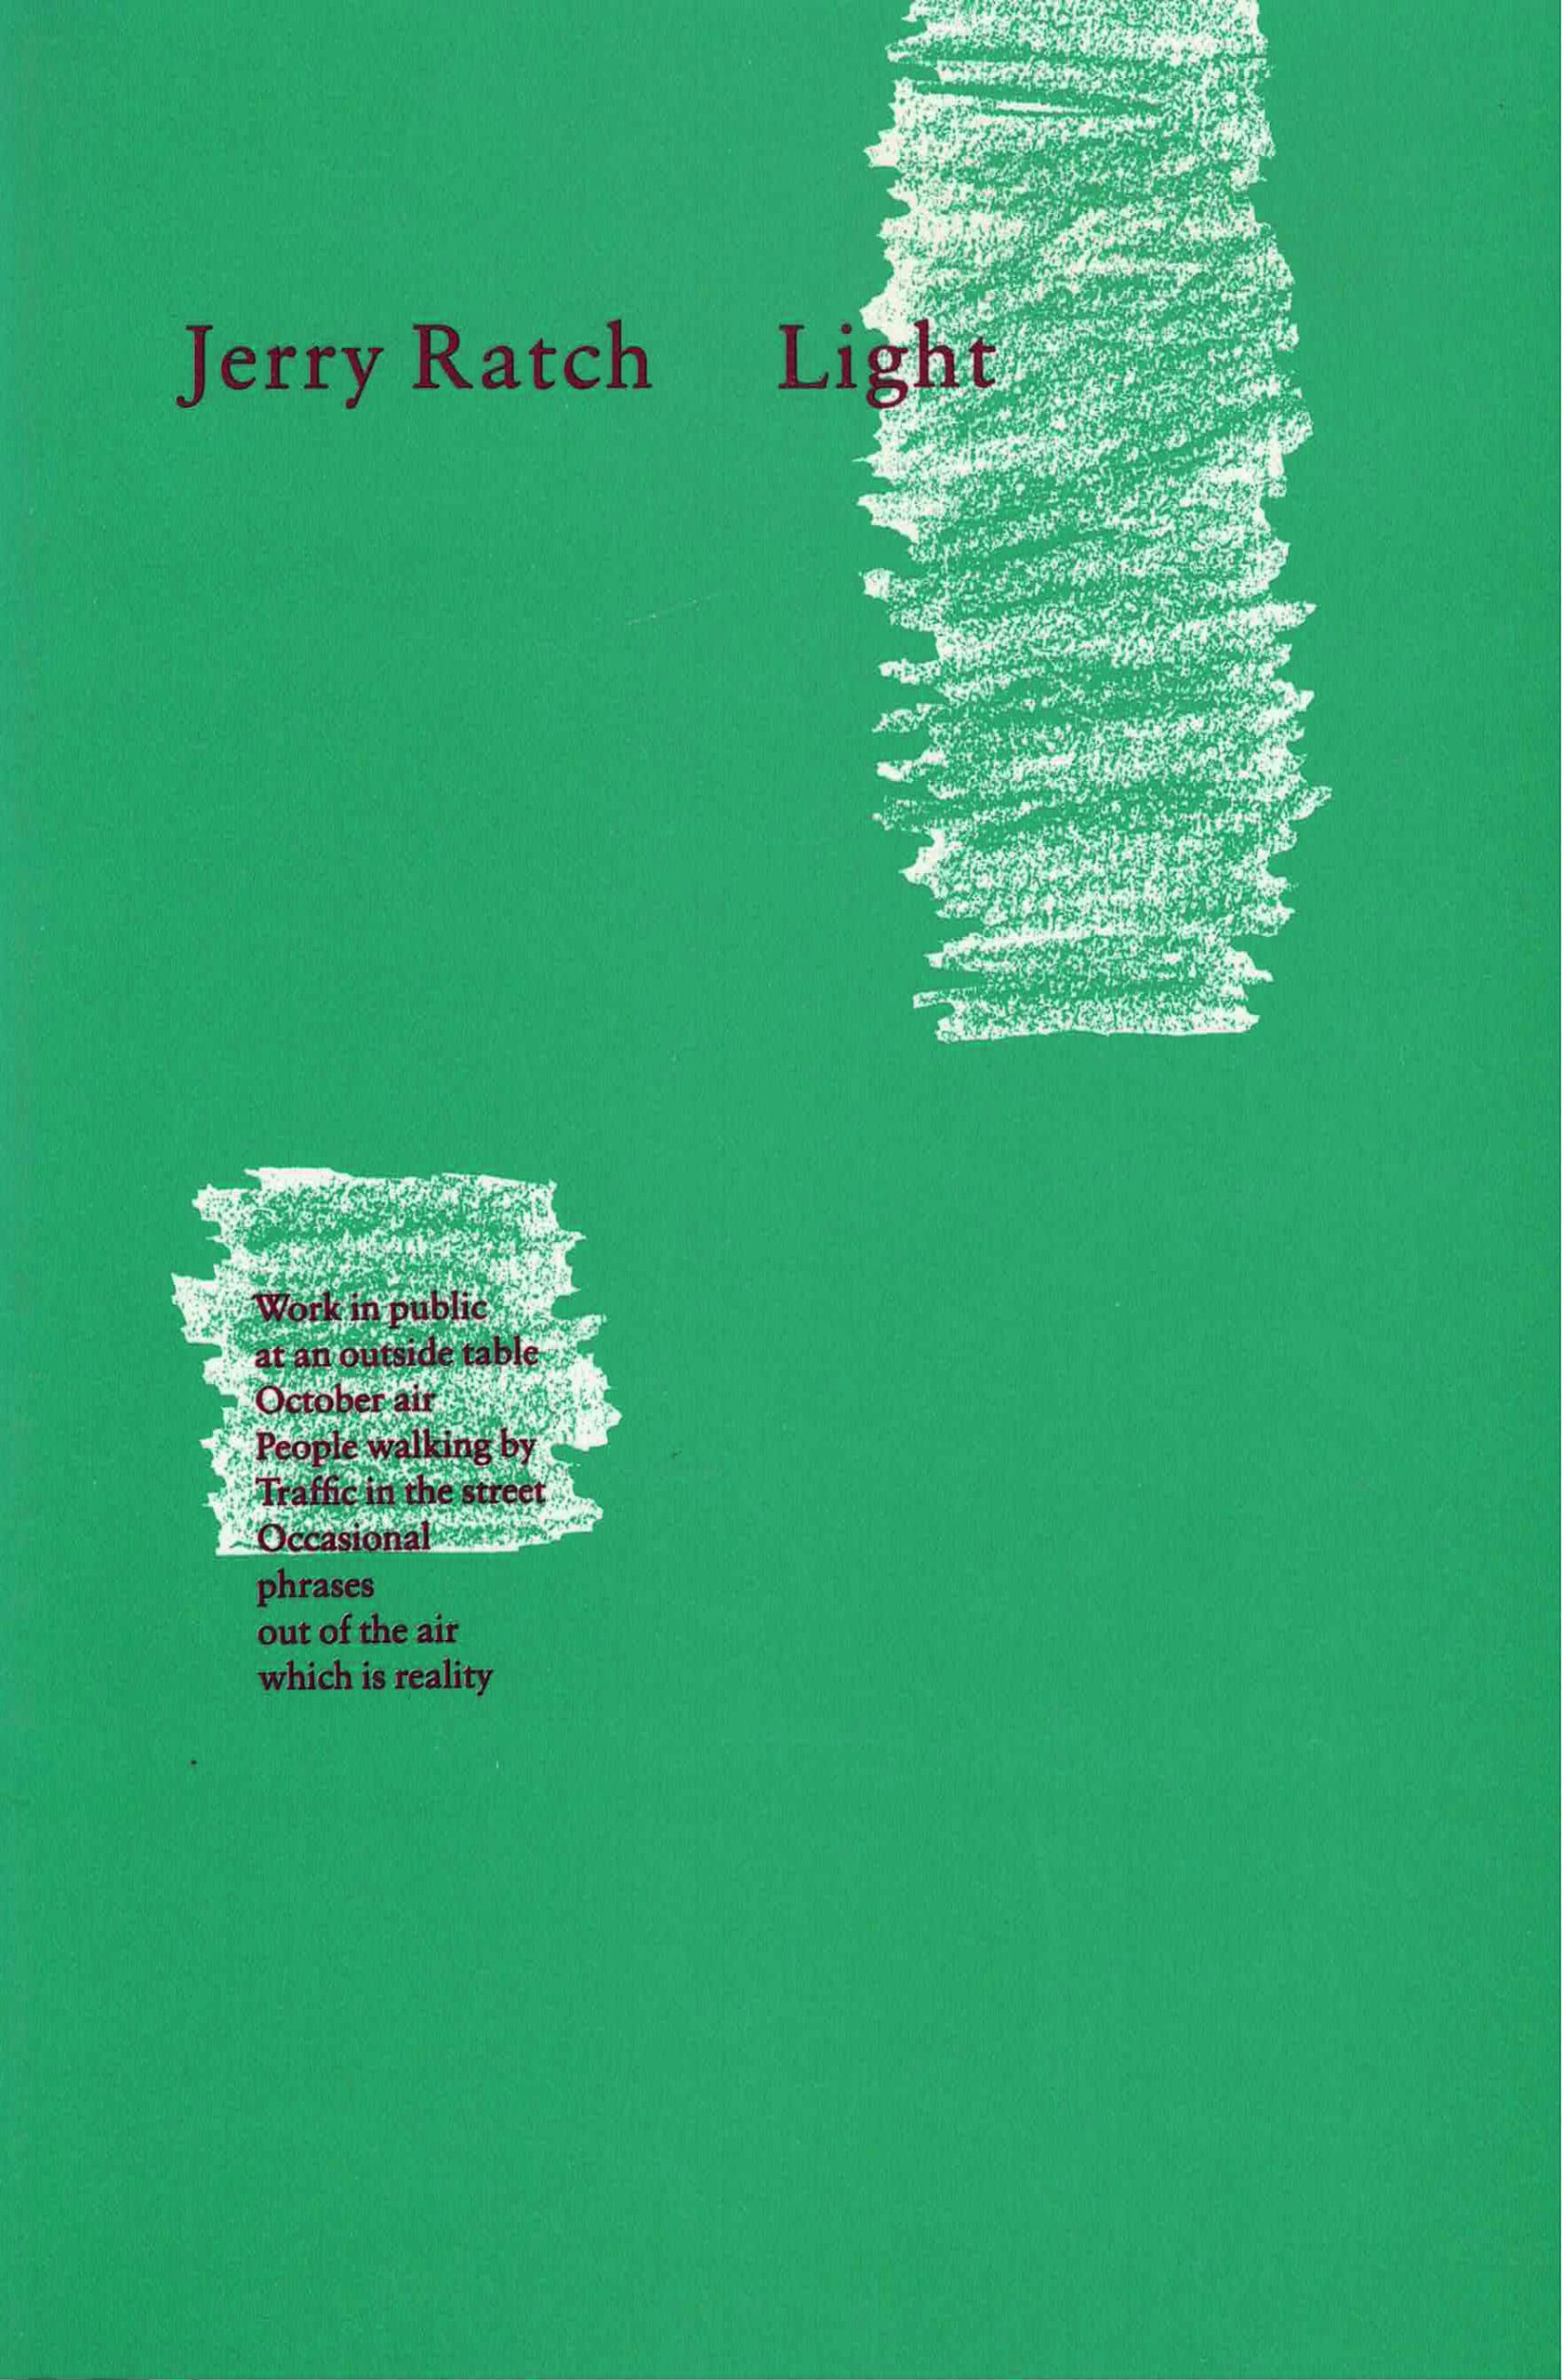 cover of Light by Jerry Ratch; leaf green background, white crayon drawn column coming halfway down from the top right side, white crayon square on bottom half of left side, poem in deep maroon ink typed poem beginning in white square and ending in the green background